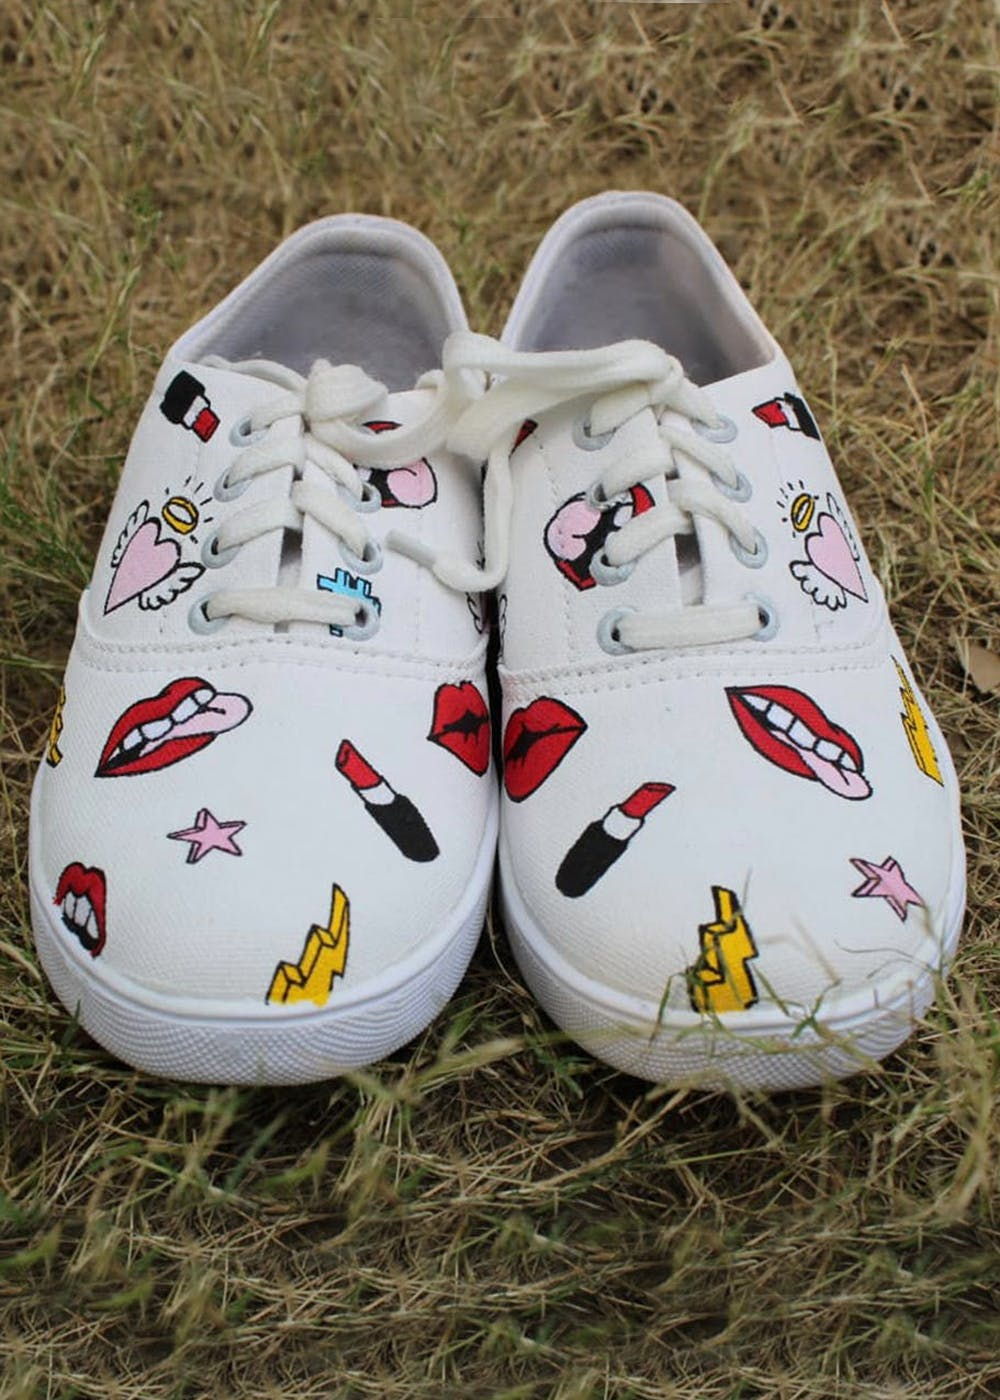 Handpainted Quirky Sneakers